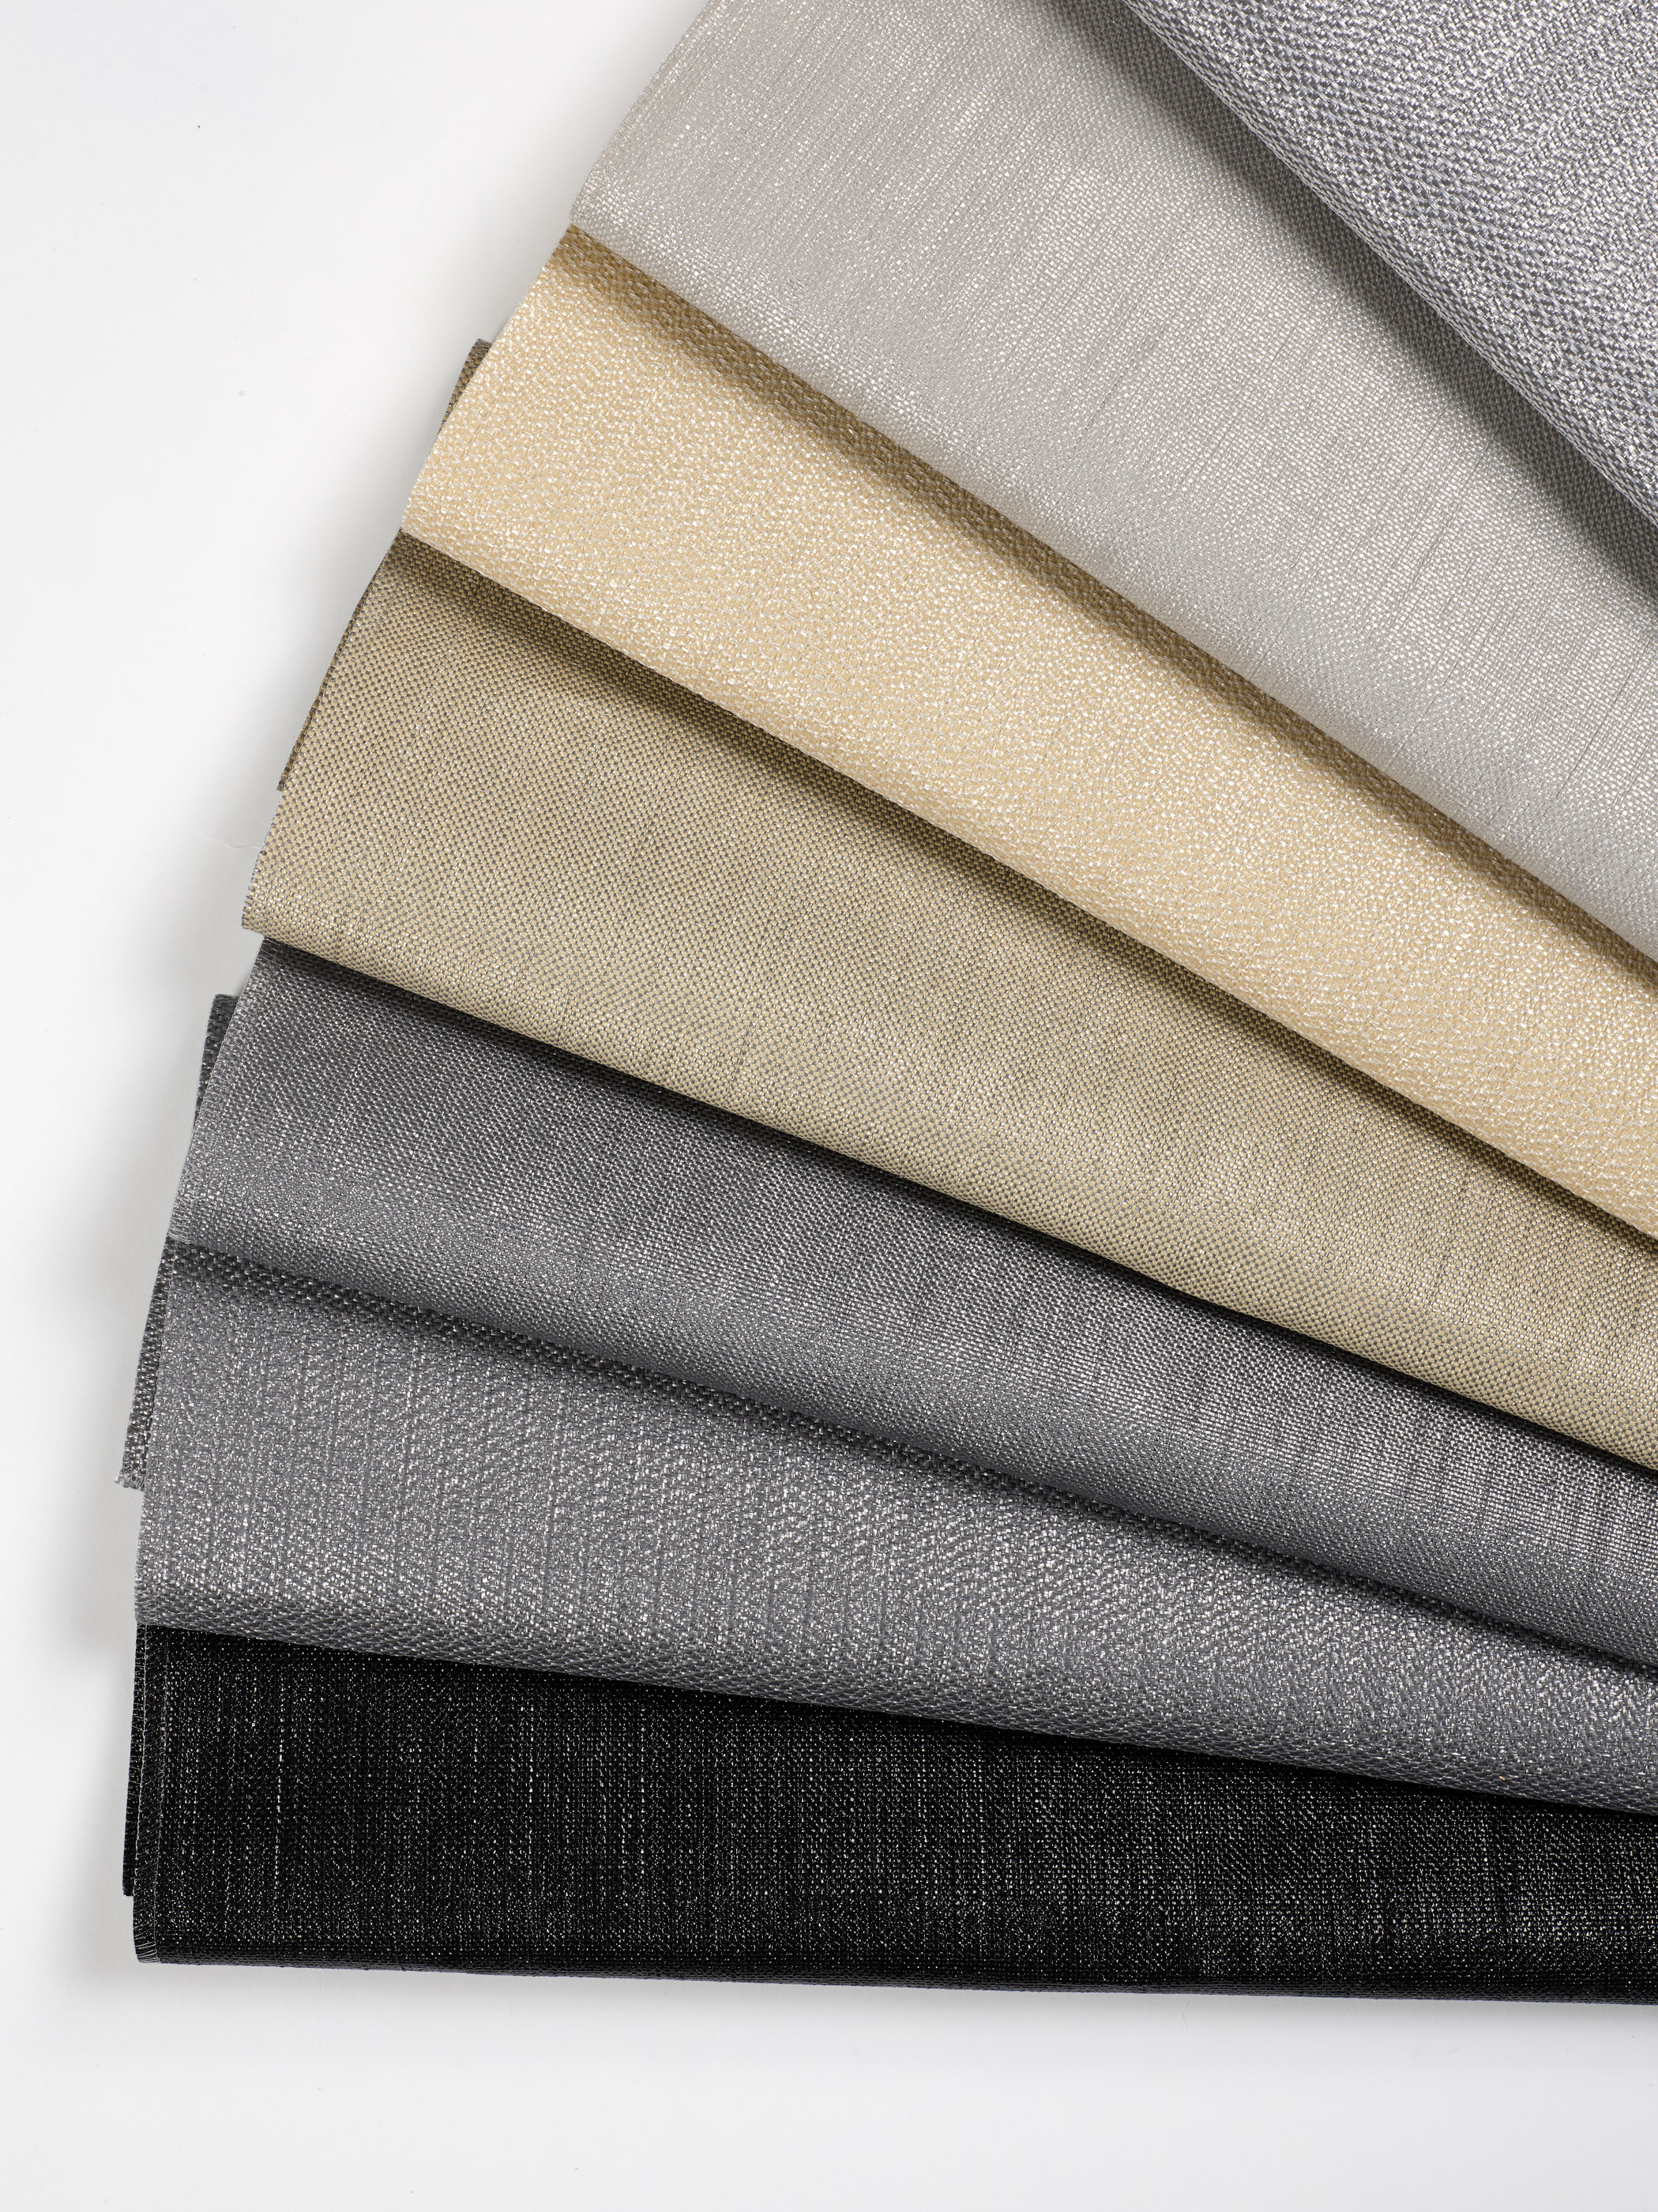 Alias ii backed wallcovering knolltextiles the outline collection alias ii asterisk ii fandeluxe Images